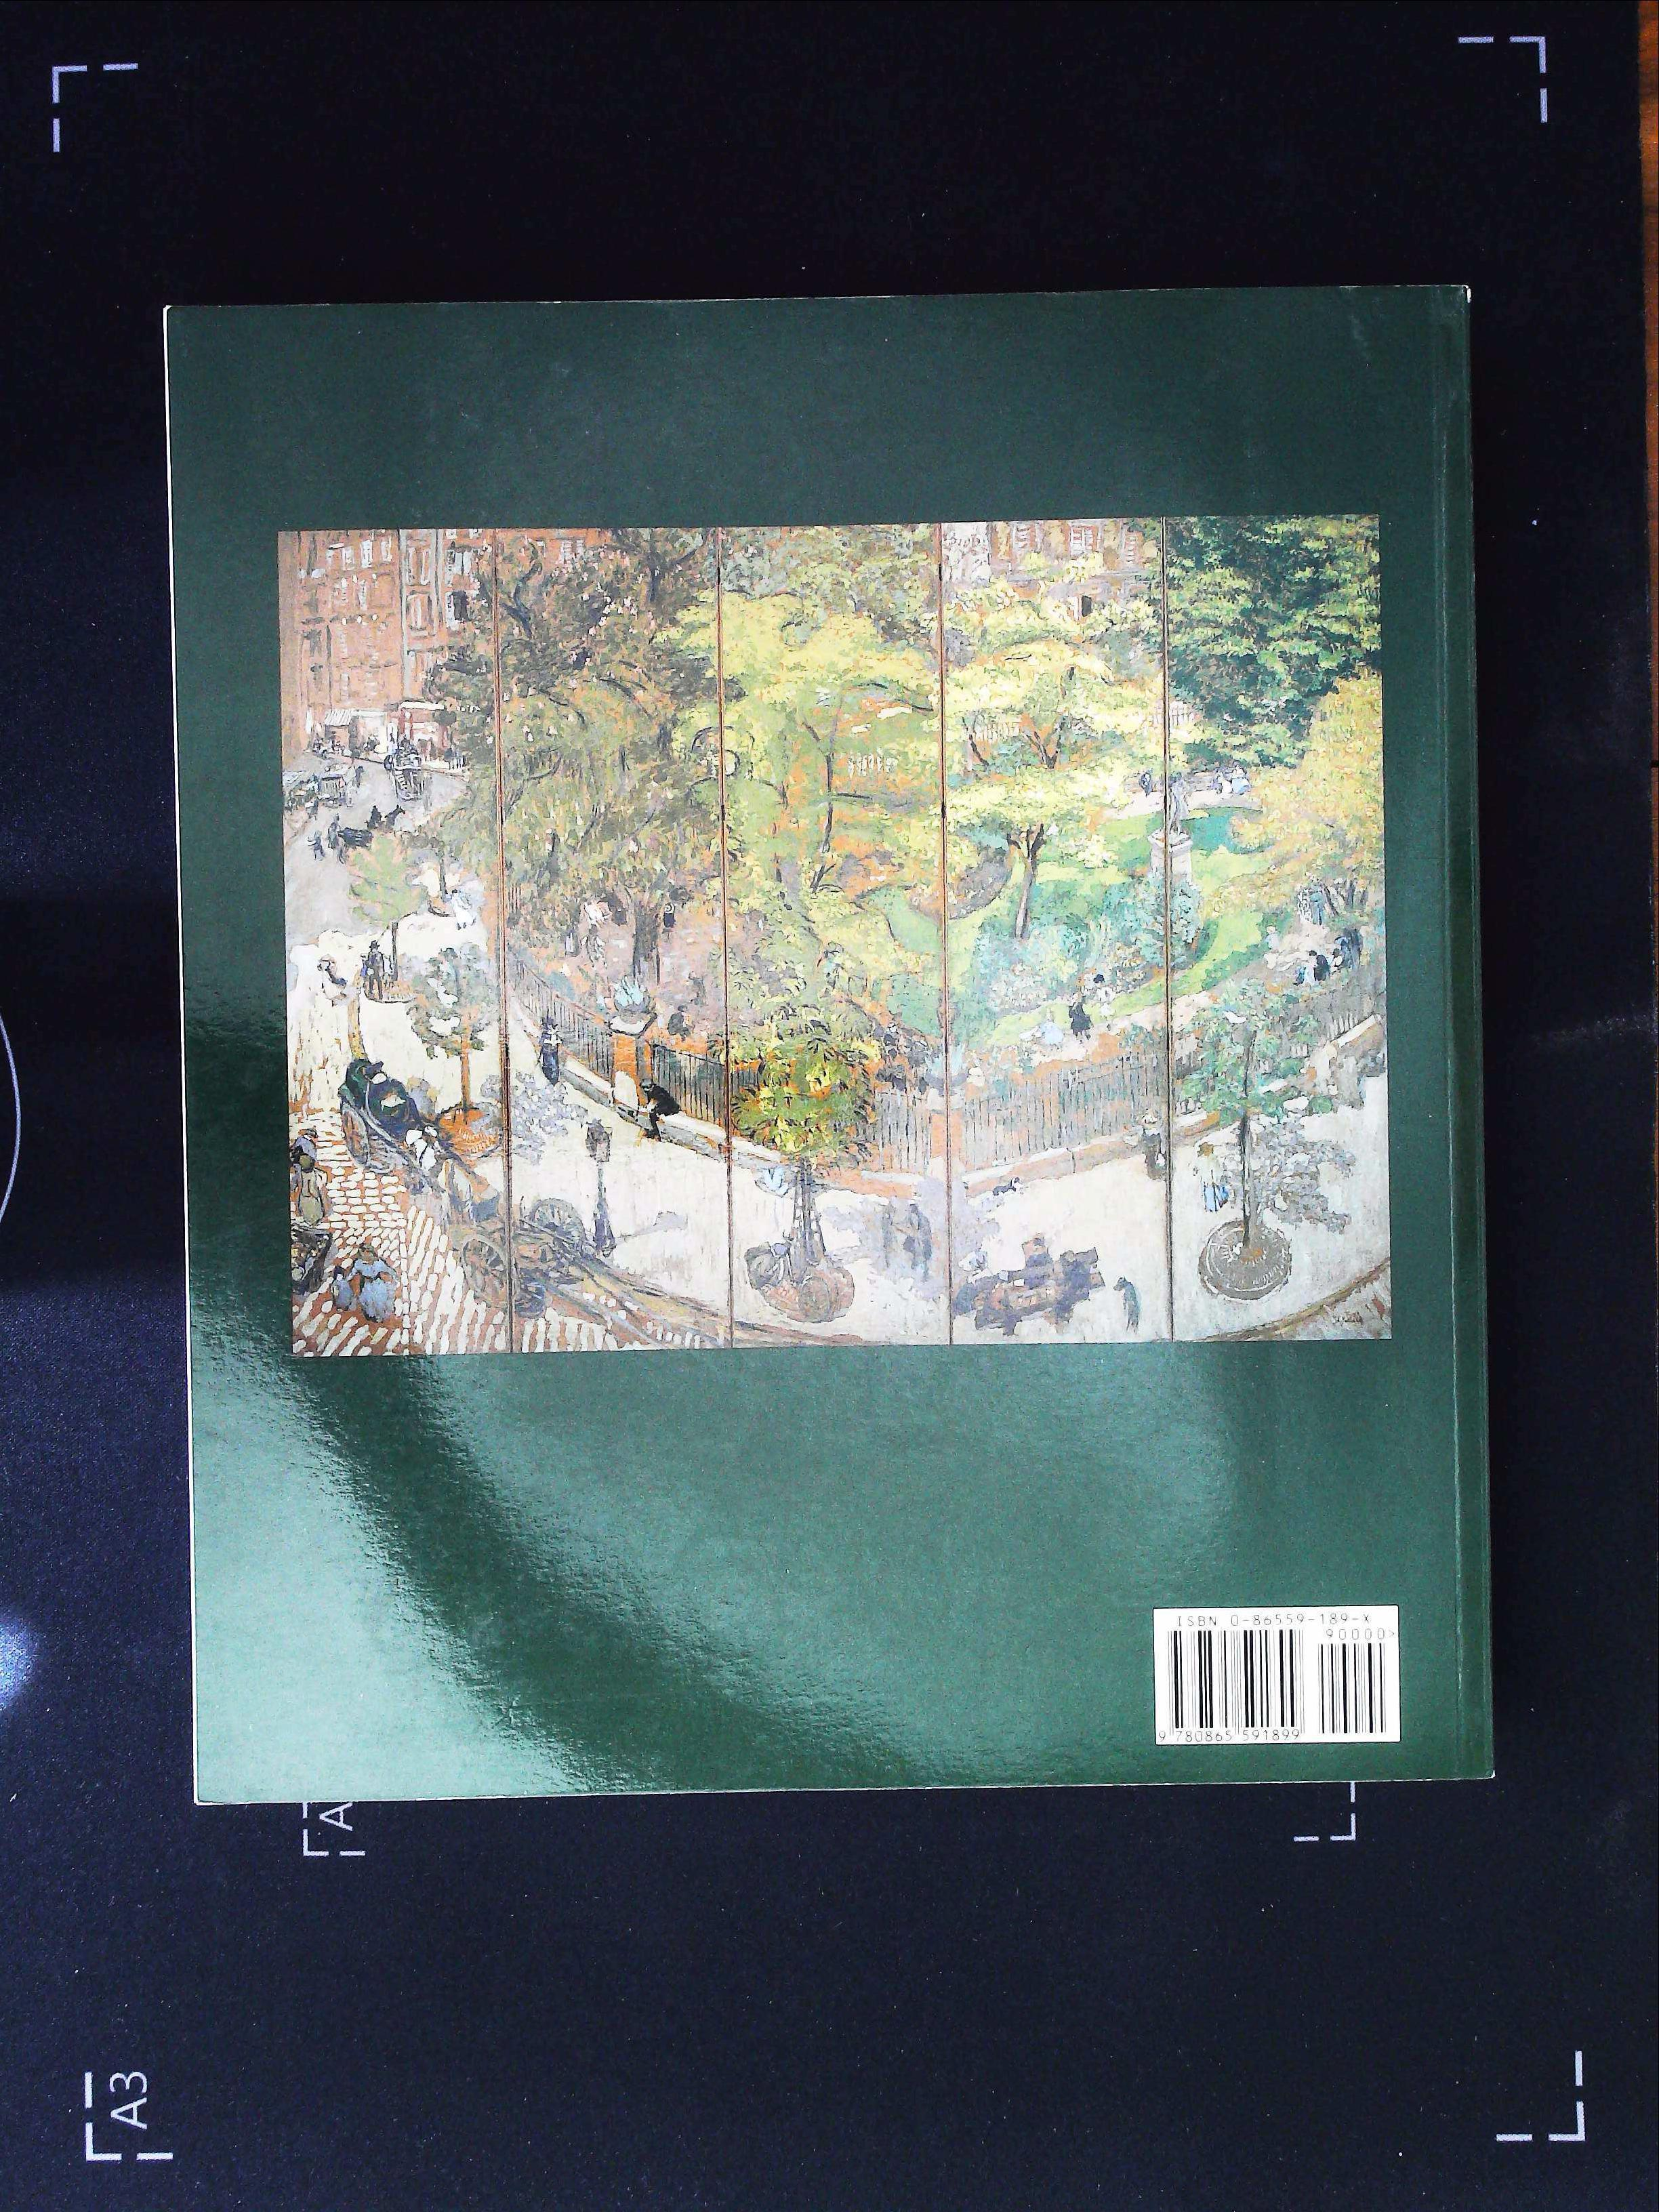 Beyond The Easel Decorative Painting By Bonnard. Vuillard, Denis And Roussel 1890-1930 paperback - Image 2 of 3